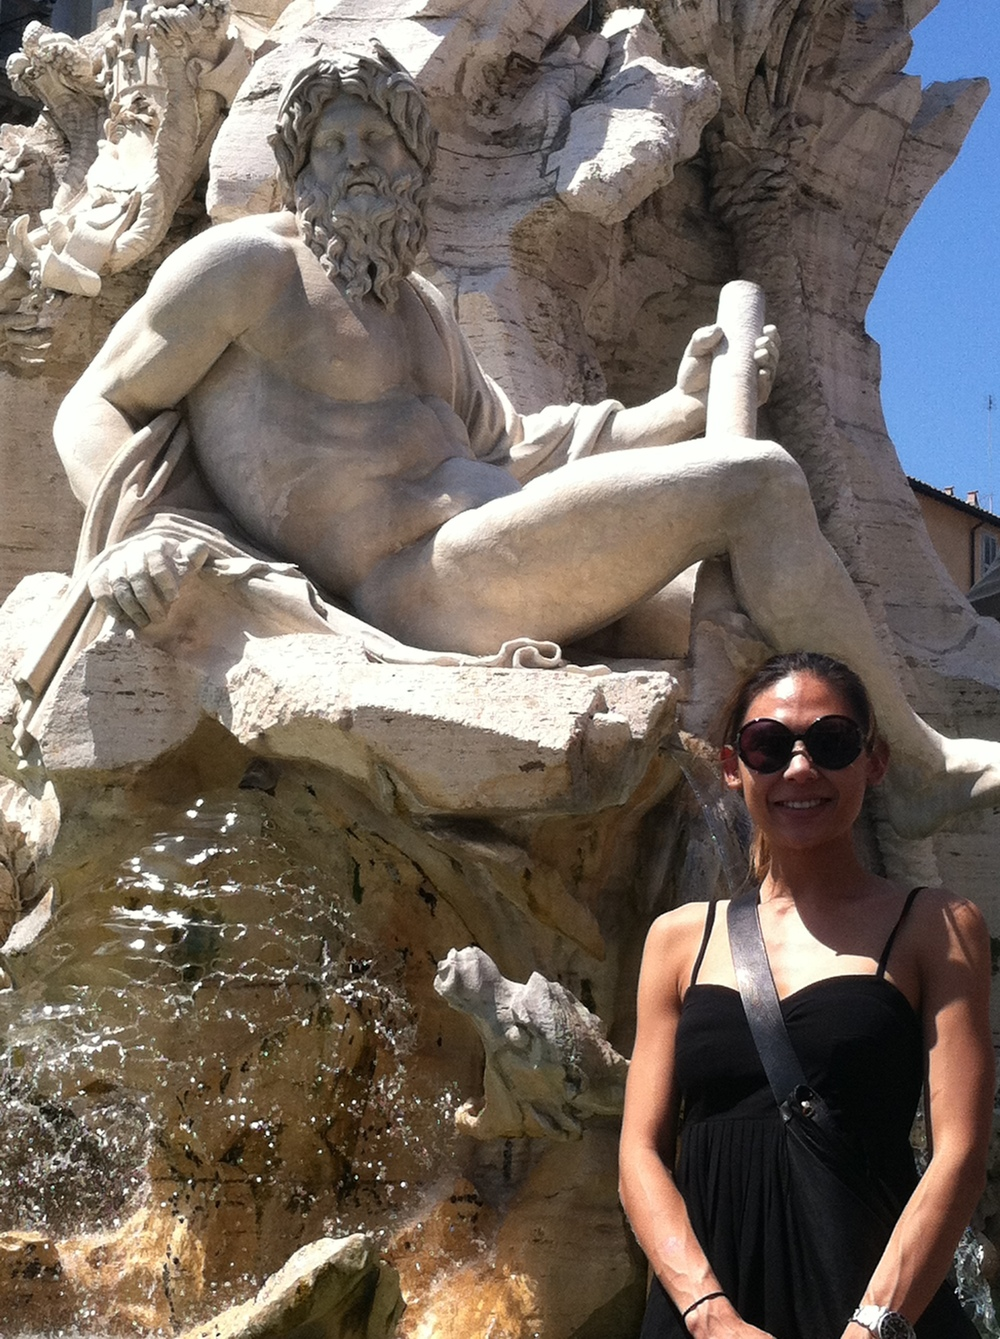 Go Go at Neptune's Fountain in Piazza Navona in Rome